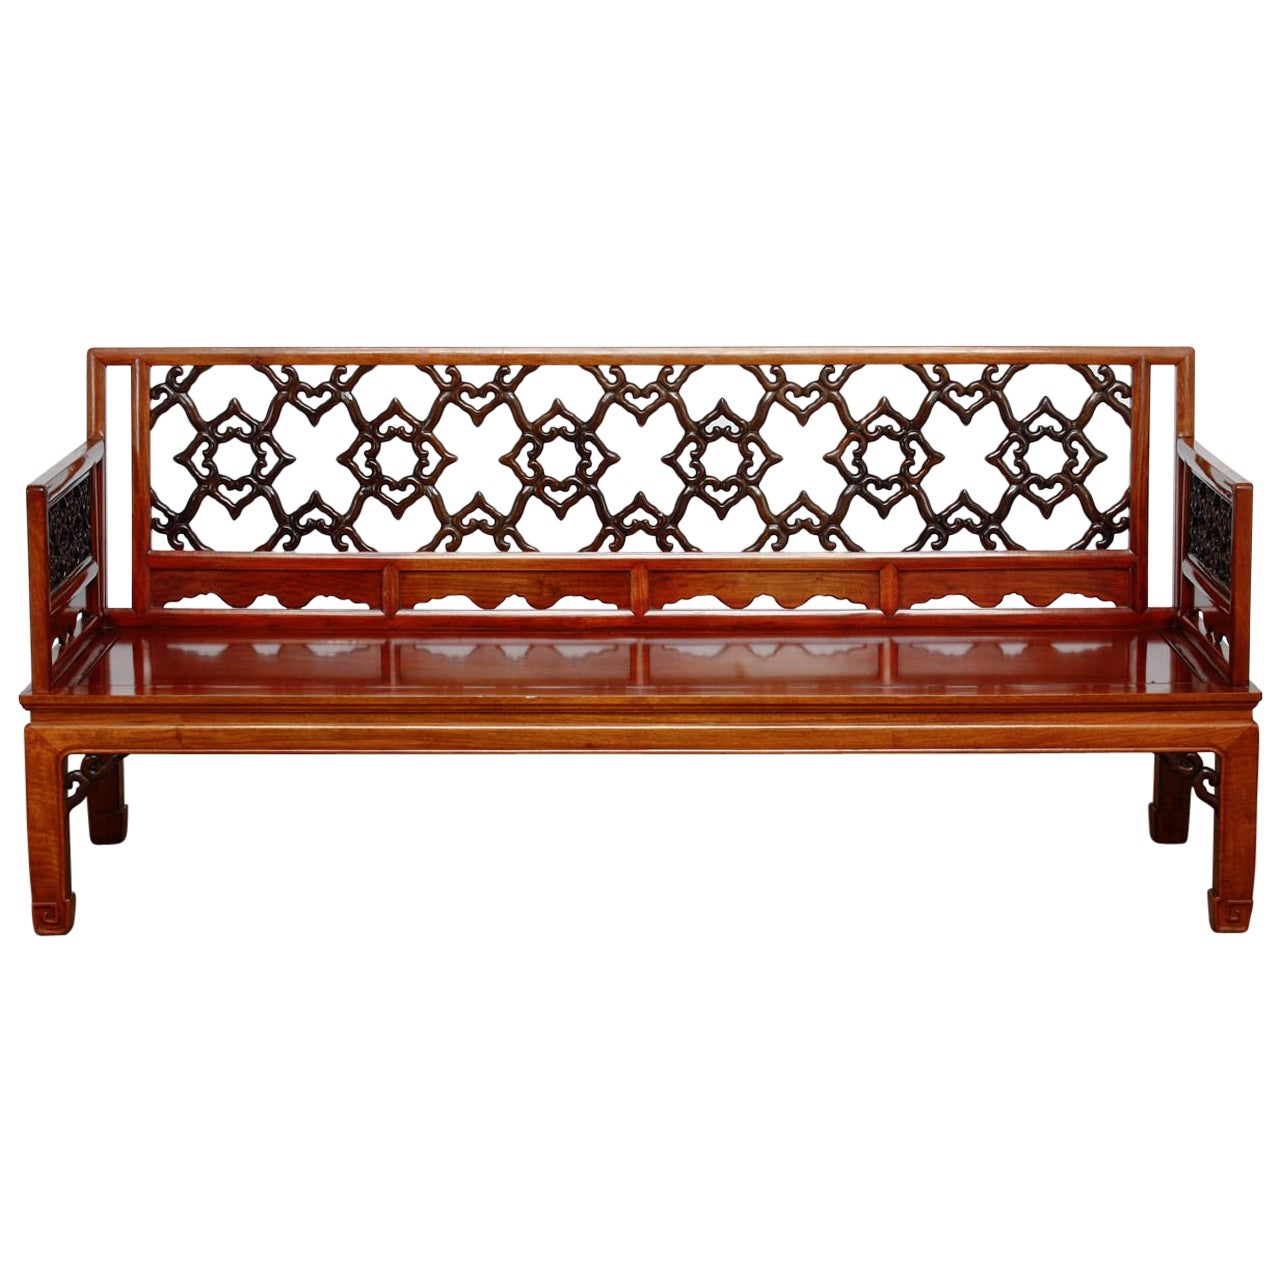 Neoclassical Style Greek Key Bench Or Sofa For Sale At 1stdibs